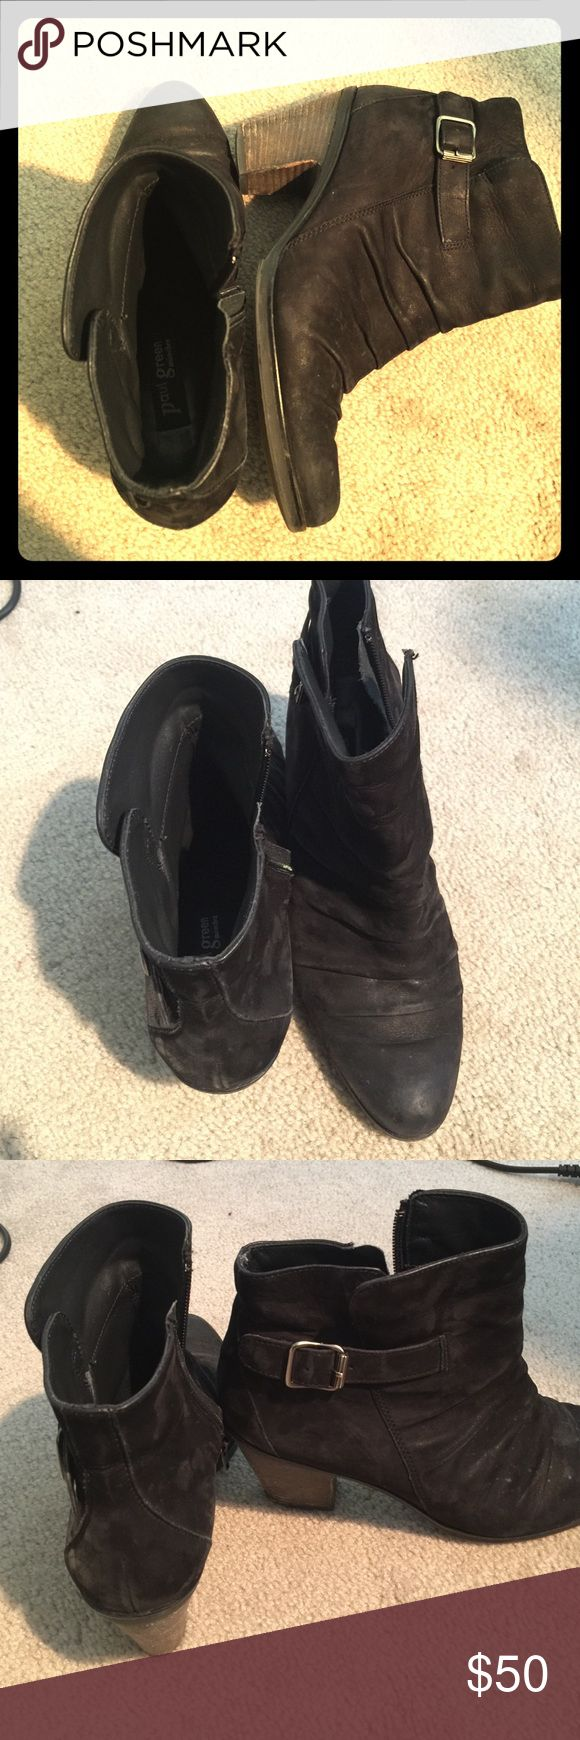 Paul Green black suede boot bootie Very comfortable Paul Green black suede bootie, ankle boot fits size 8.5, European size 6 on the sole.  Nice comfy heel height. Bought from Nordstrom. Paul Green Shoes Ankle Boots & Booties